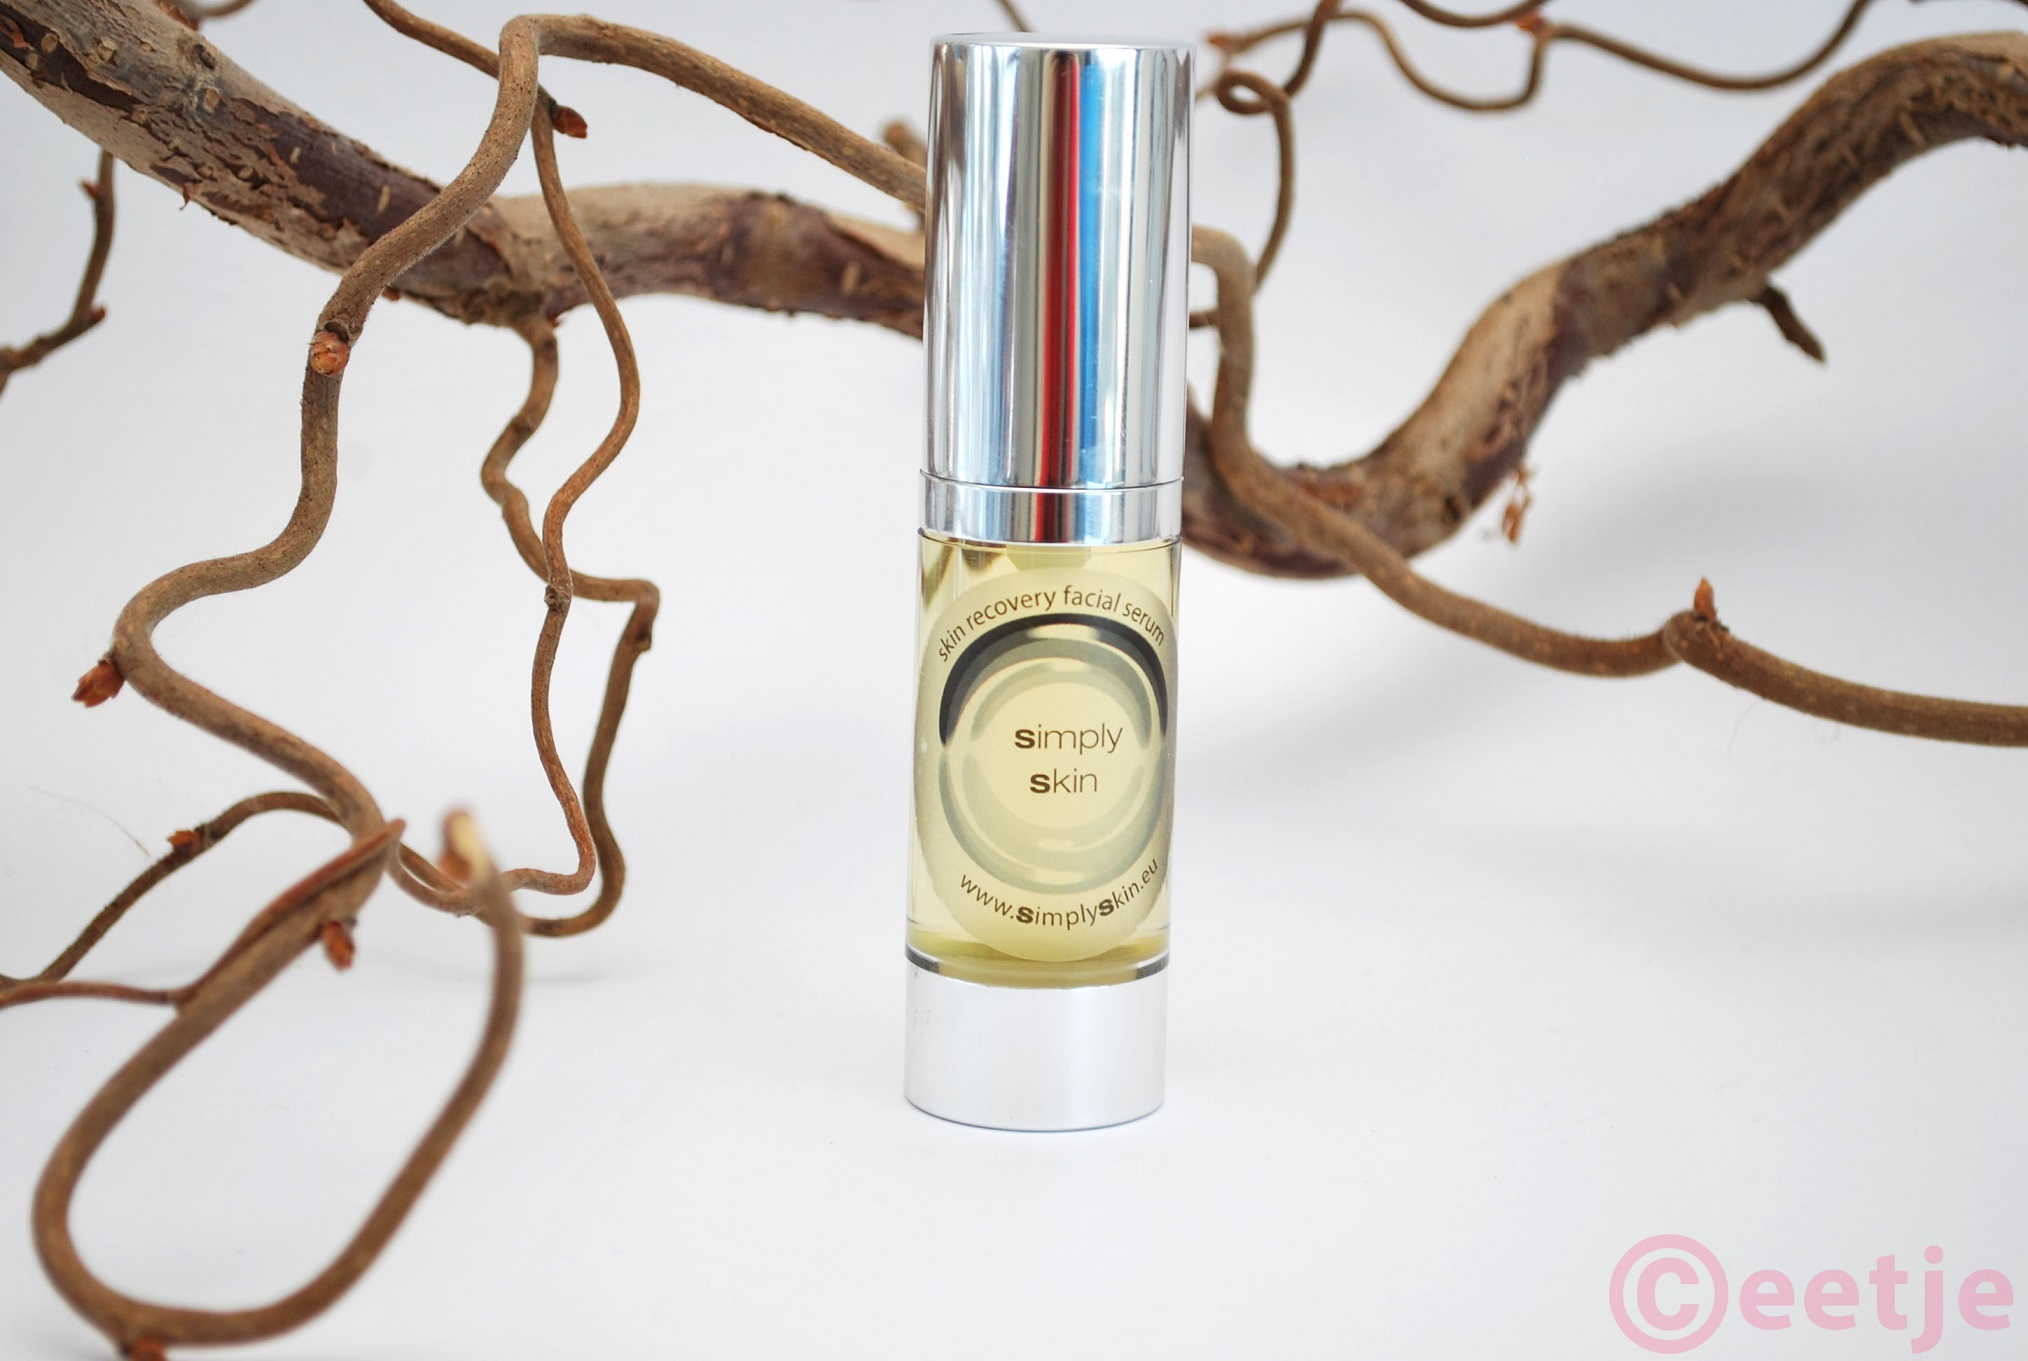 Review Simply skin facial recovery serum